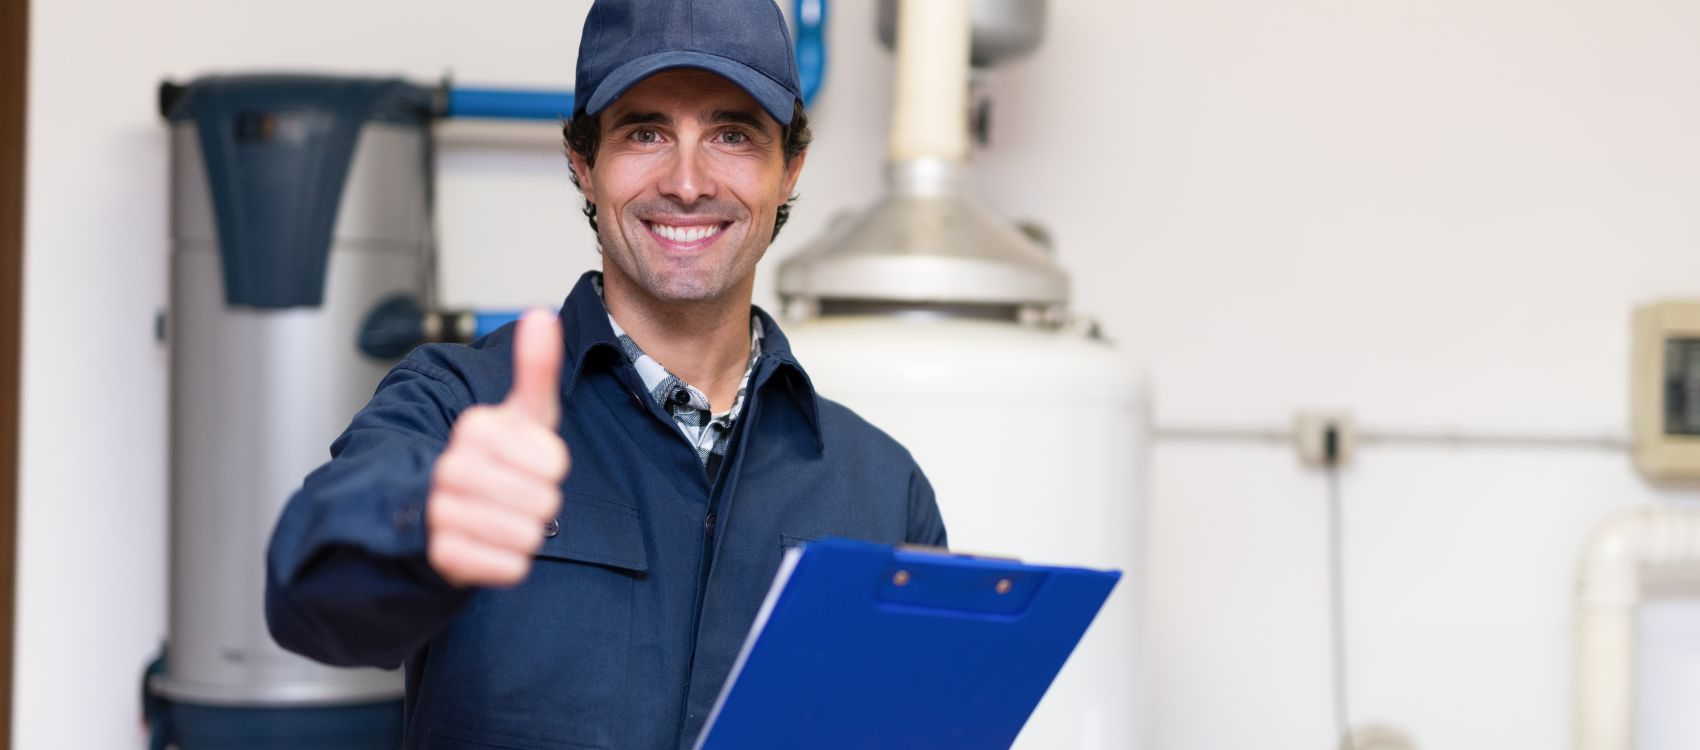 london water heater service